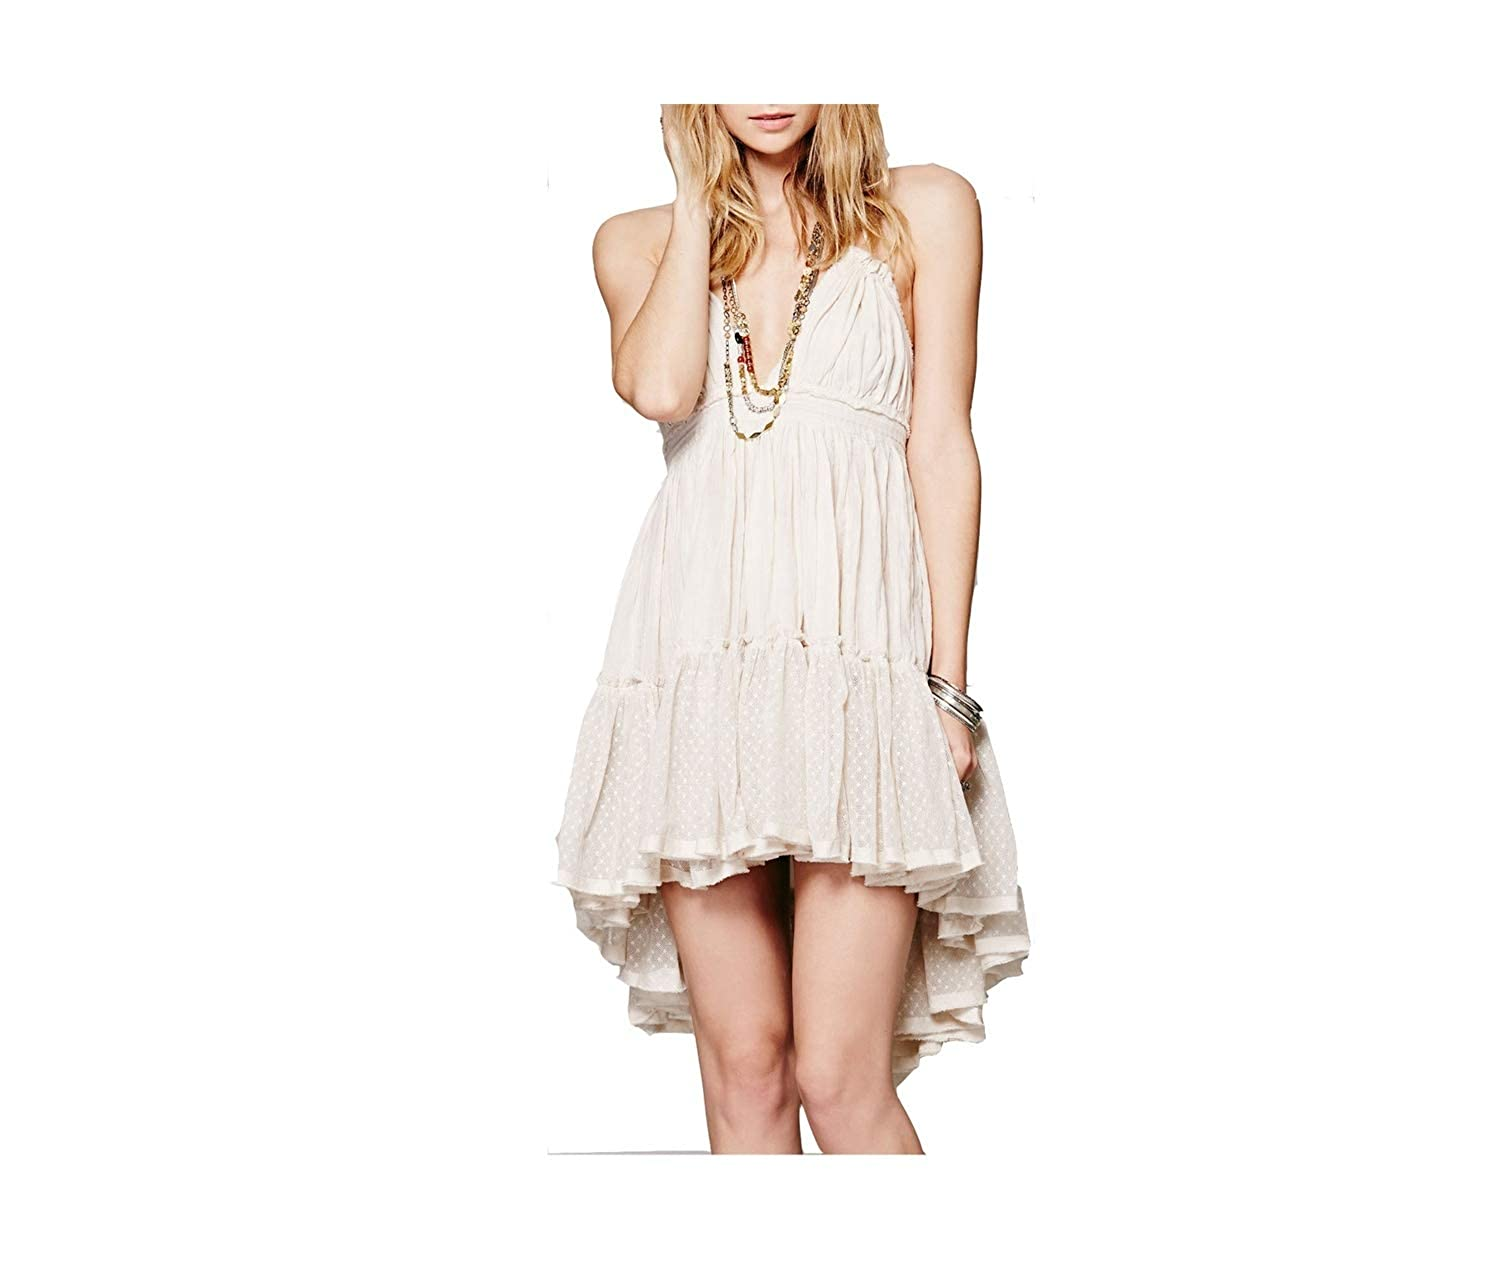 White mamamoo Summer Dress Robe Femme Dresses Plus Size Spaghetti Strap Sleeveless Bohemian Boho Sweet